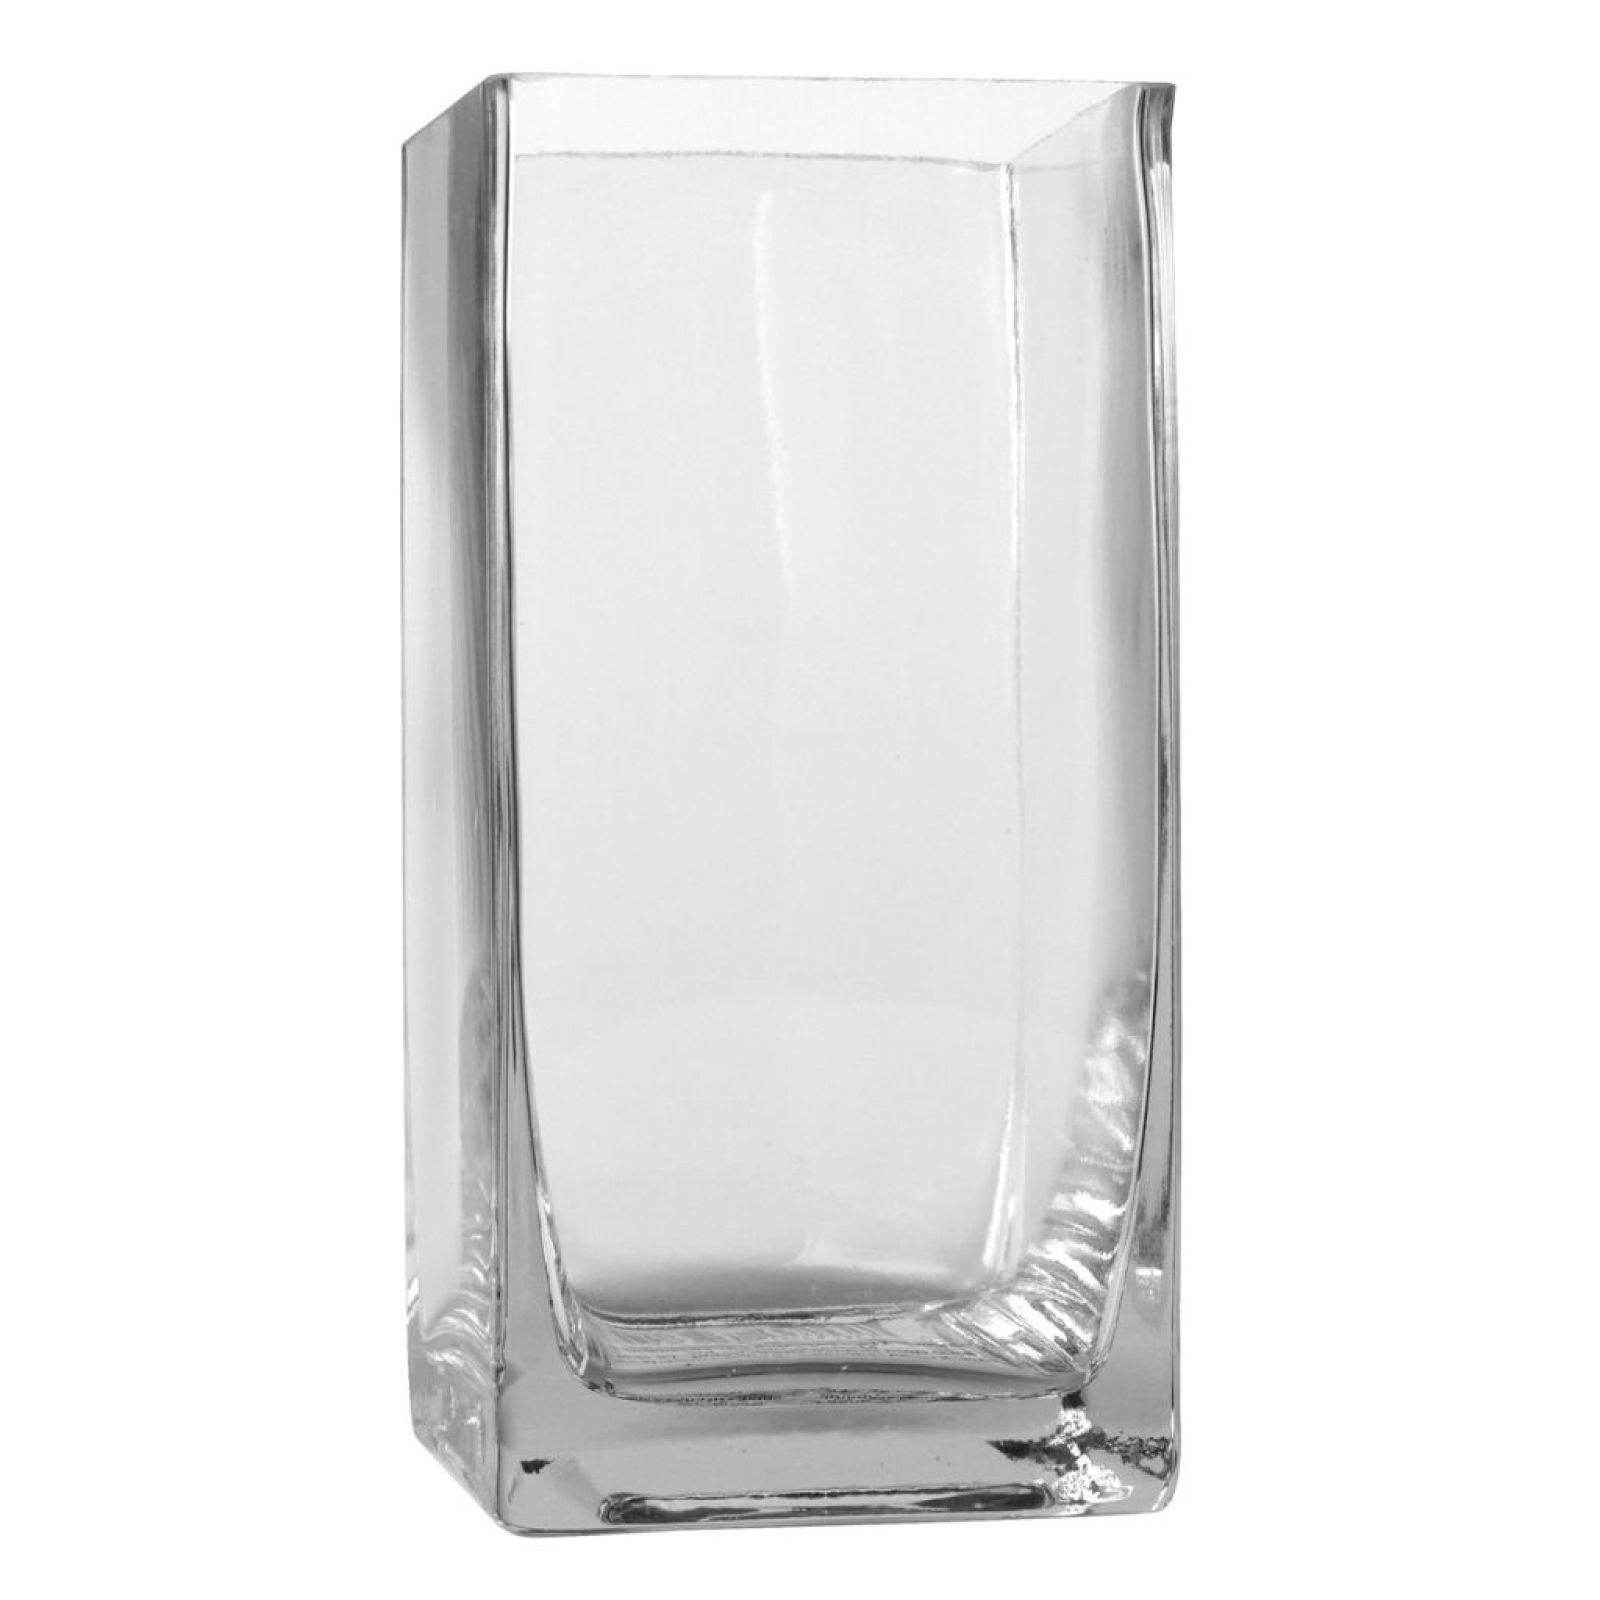 Michaels Glass Cylinder Vase Of ashland Tall Cube Glass Vase Cube and Glass with ashlanda Tall Cube Glass Vase 6